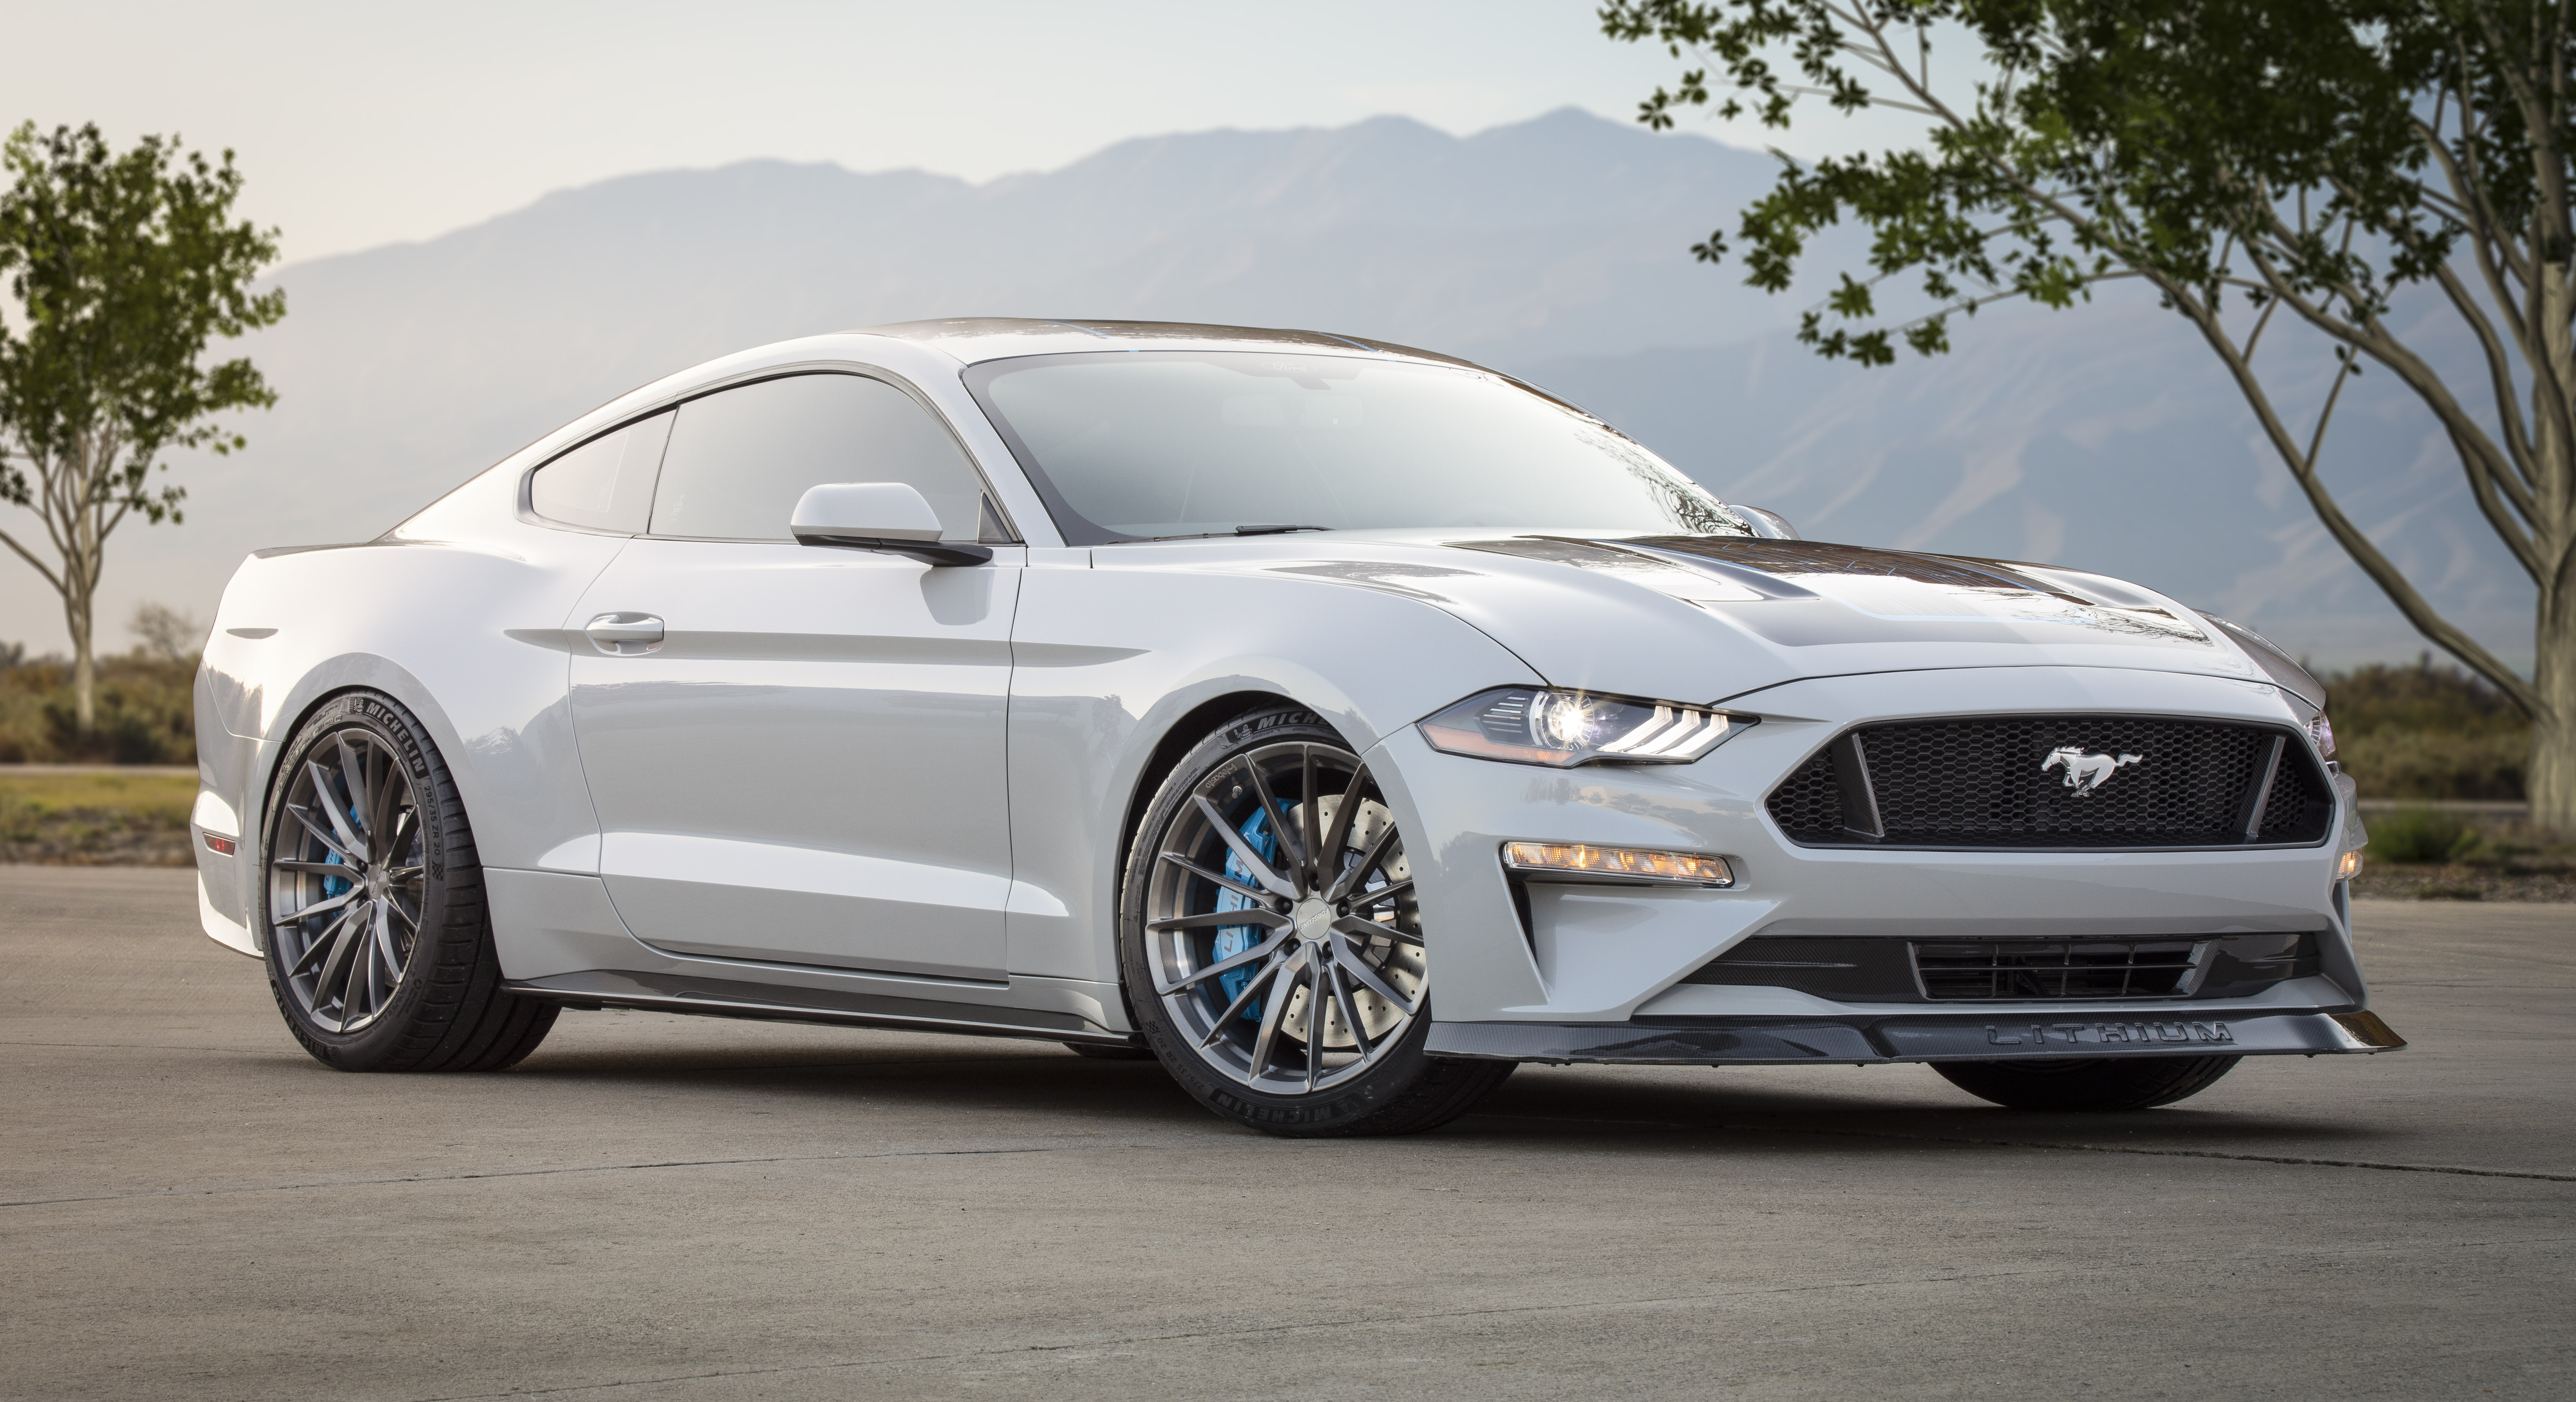 ford mustang lithium 2019 front 1574936423 - Ford Mustang Lithium 2019 Front -